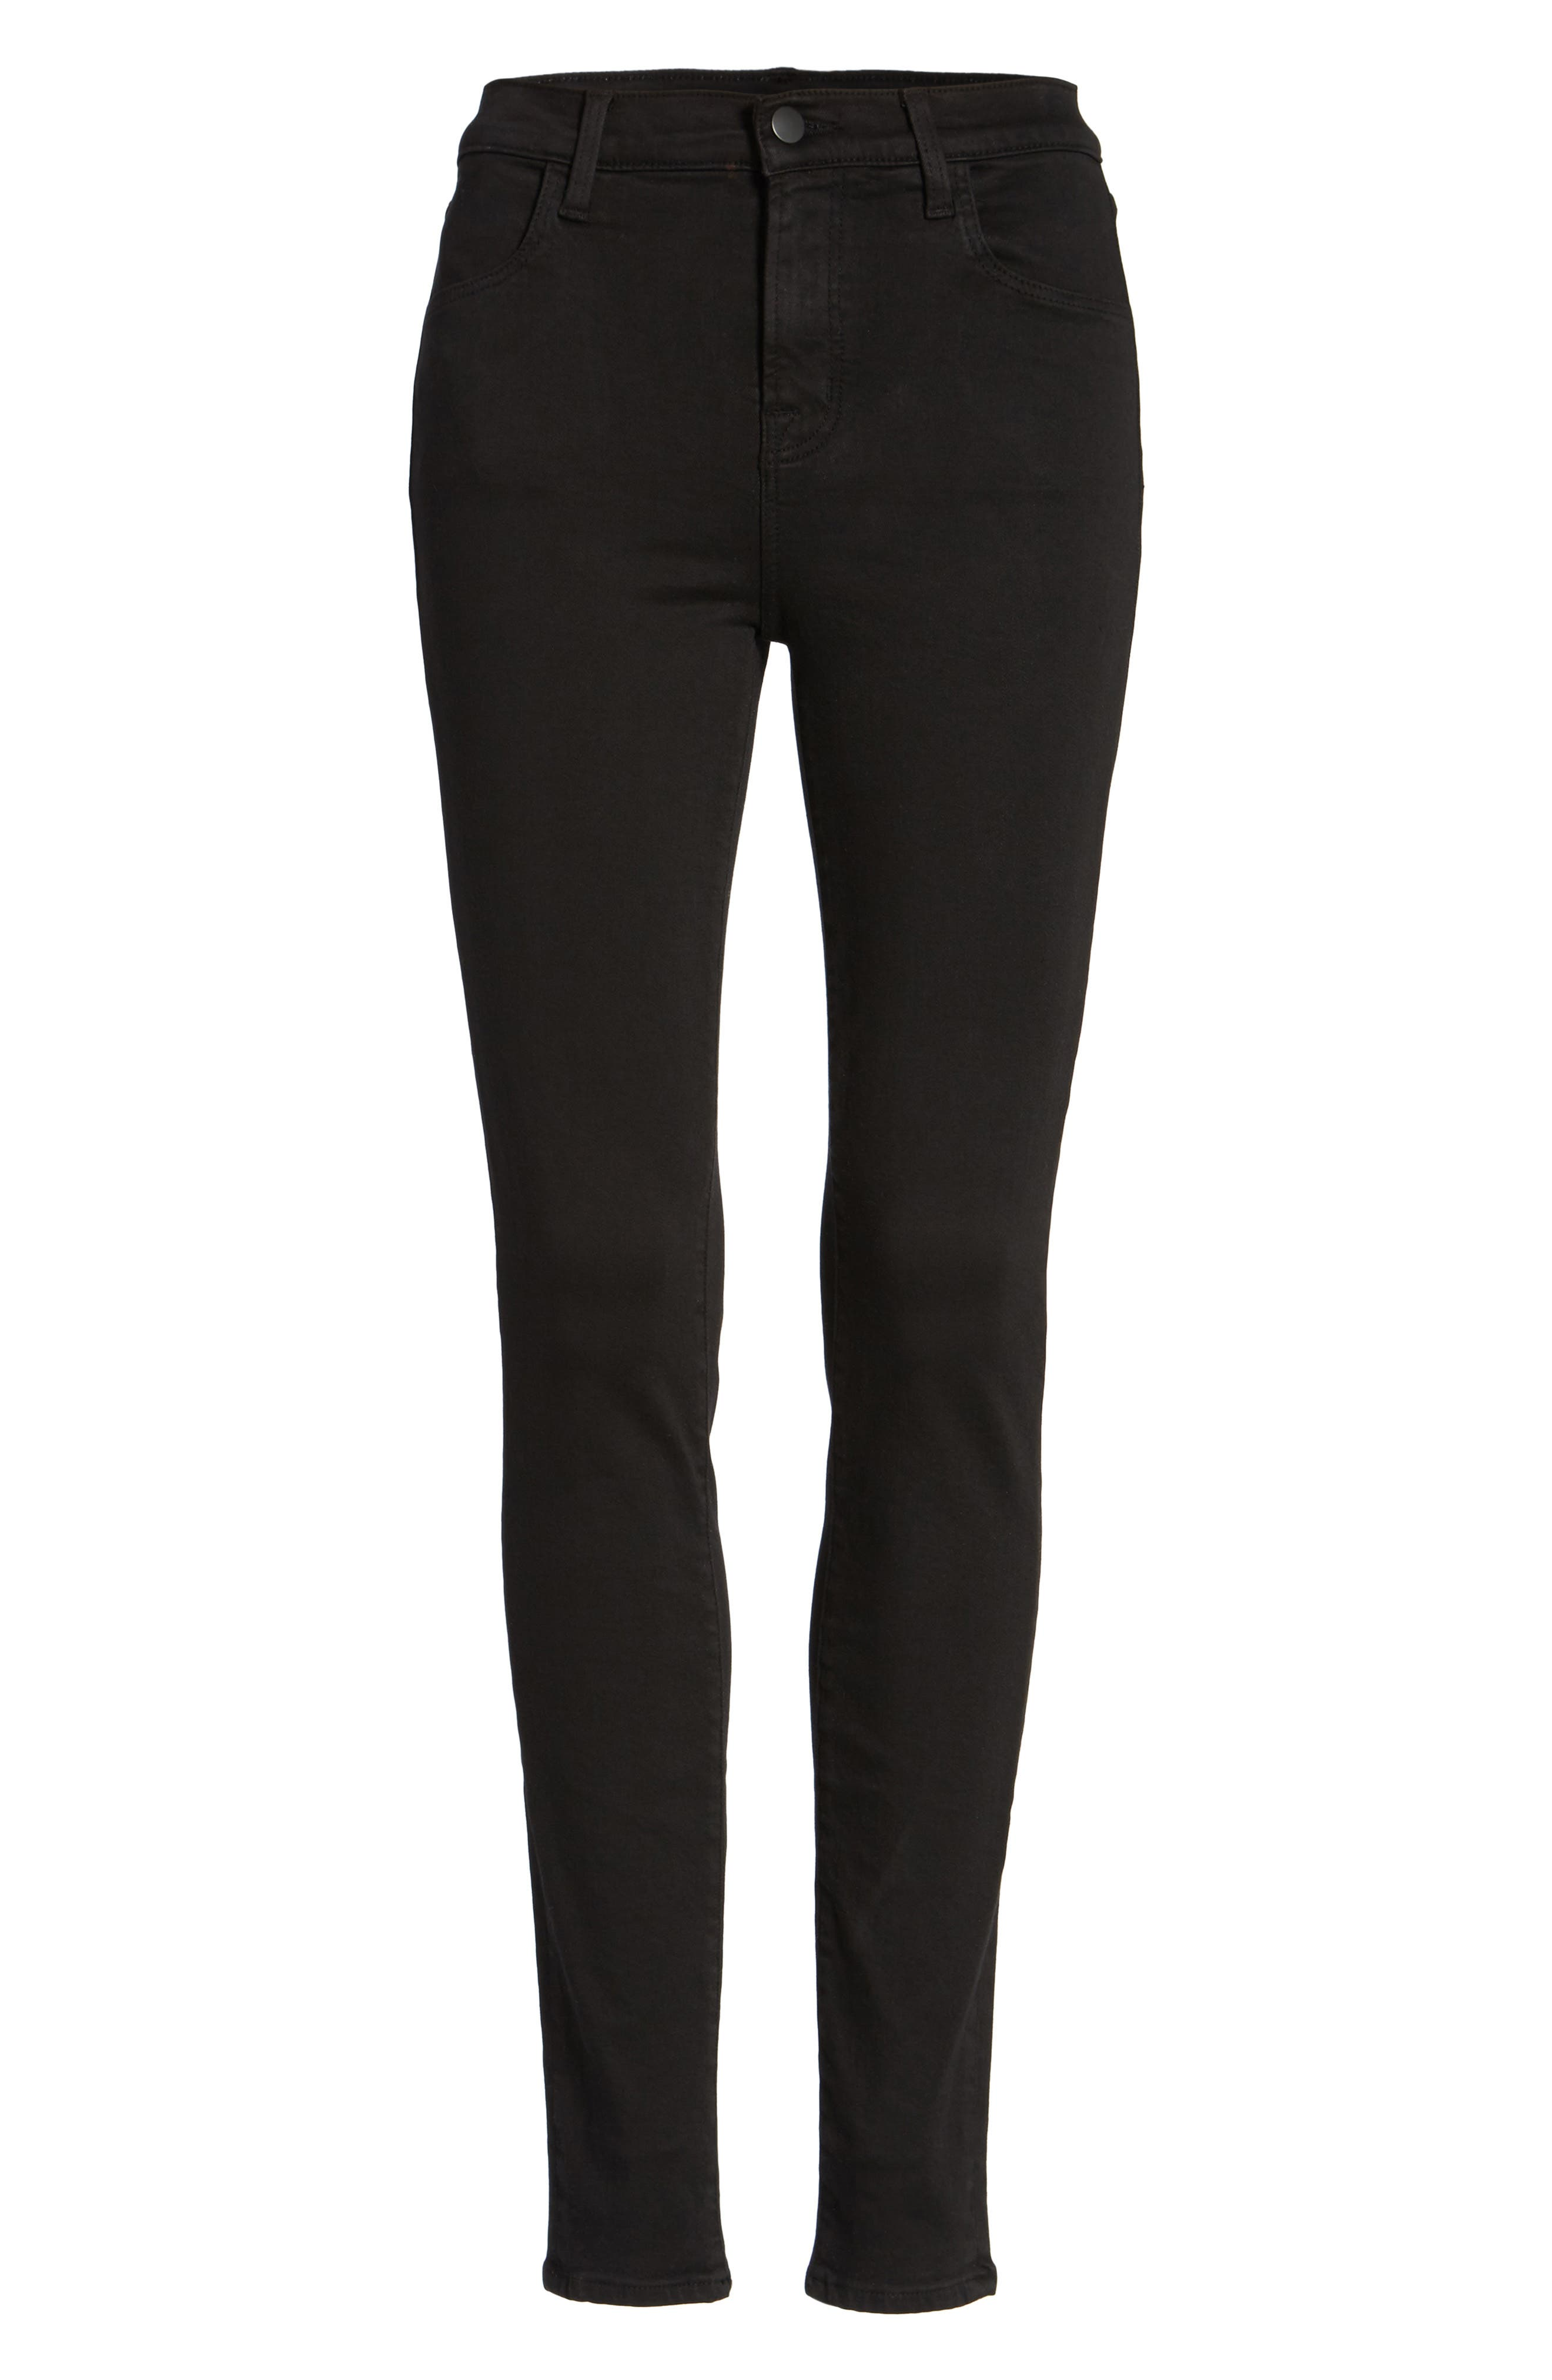 Maria High Waist Skinny Jeans,                             Alternate thumbnail 7, color,                             BLACK